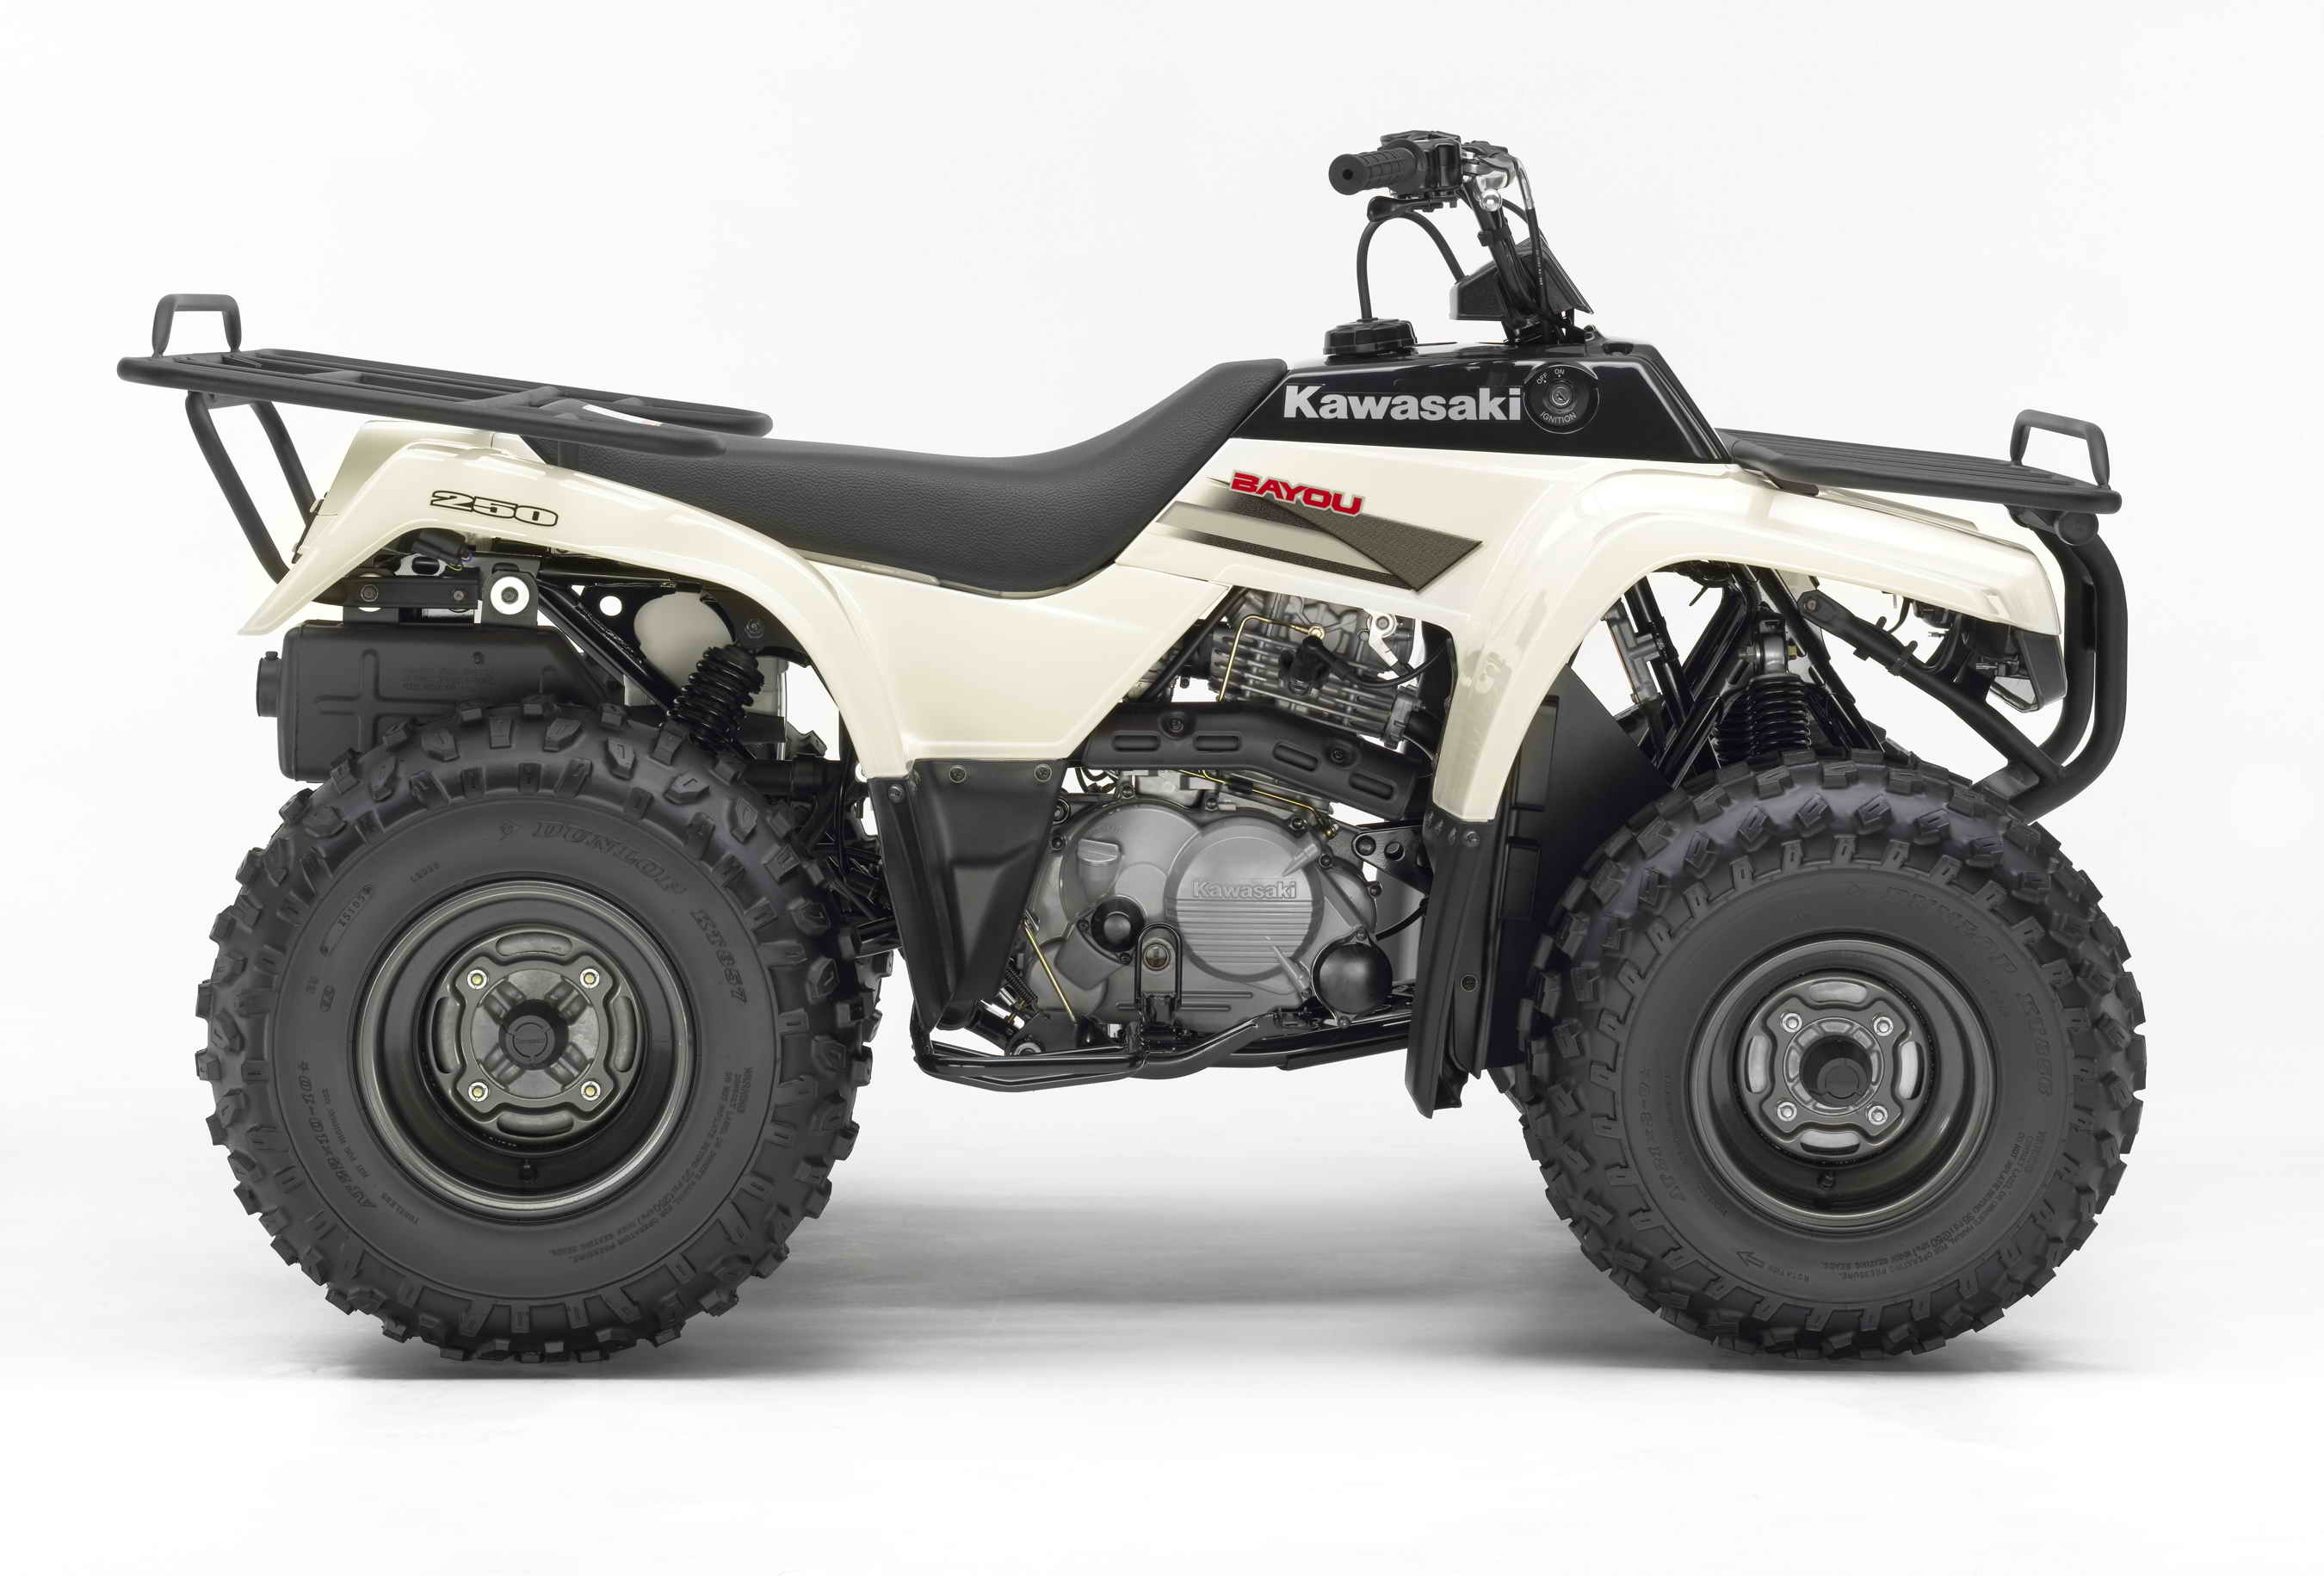 2007 Kawasaki Bayou 250 | Top Sd on